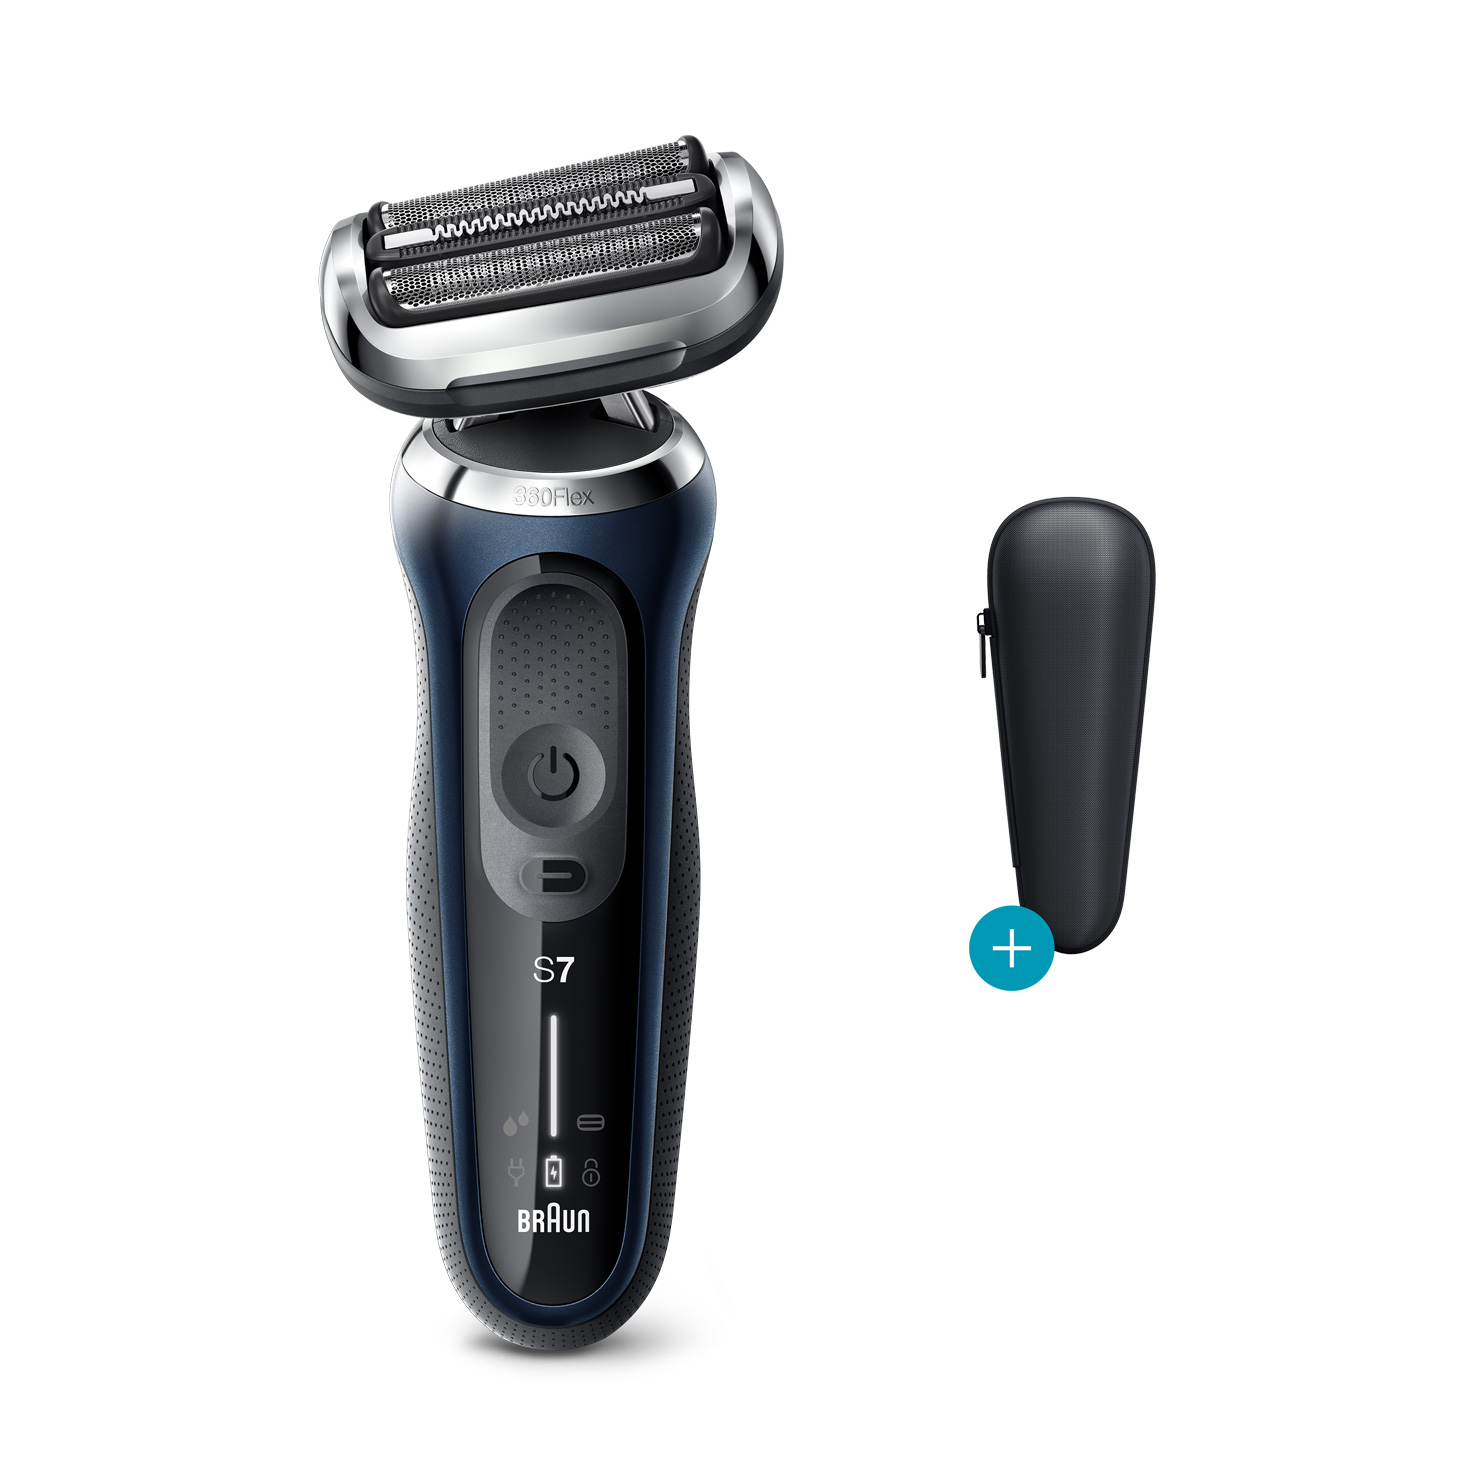 Series 7 70-B1000s shaver